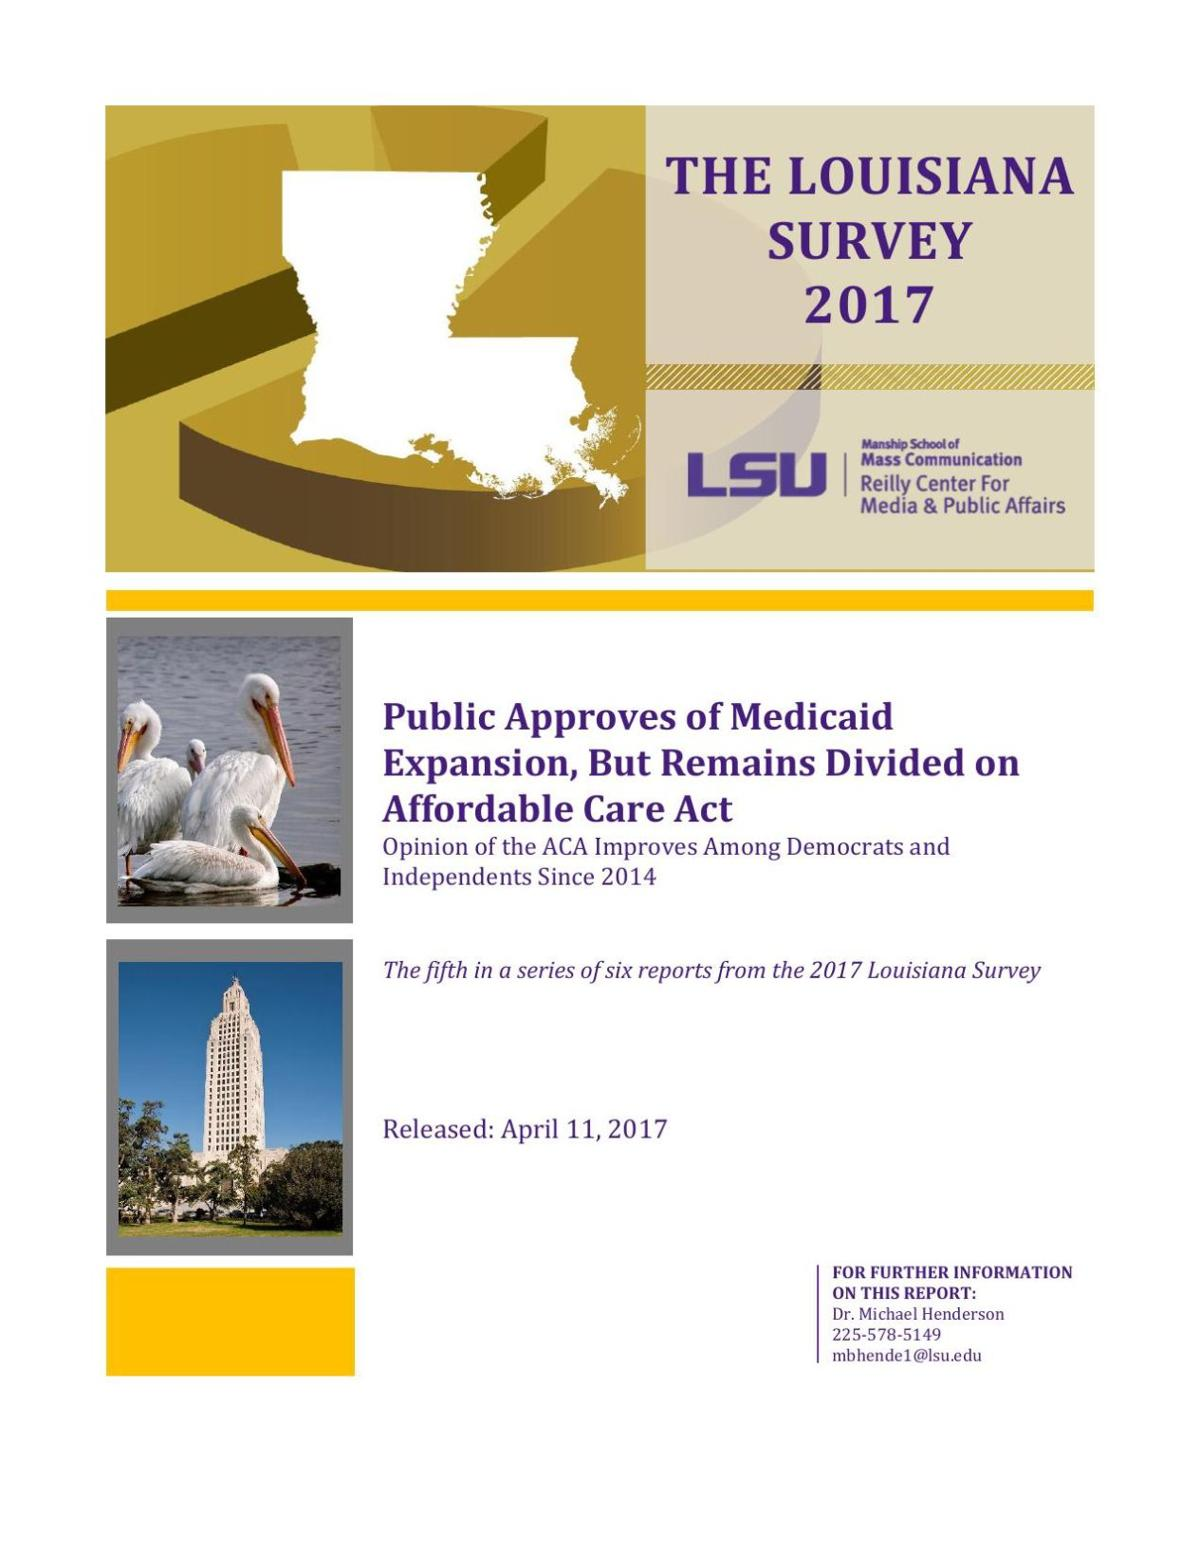 PDF: Read the 2017 Louisiana Survey results on Medicaid expansion and the Affordable Care Act